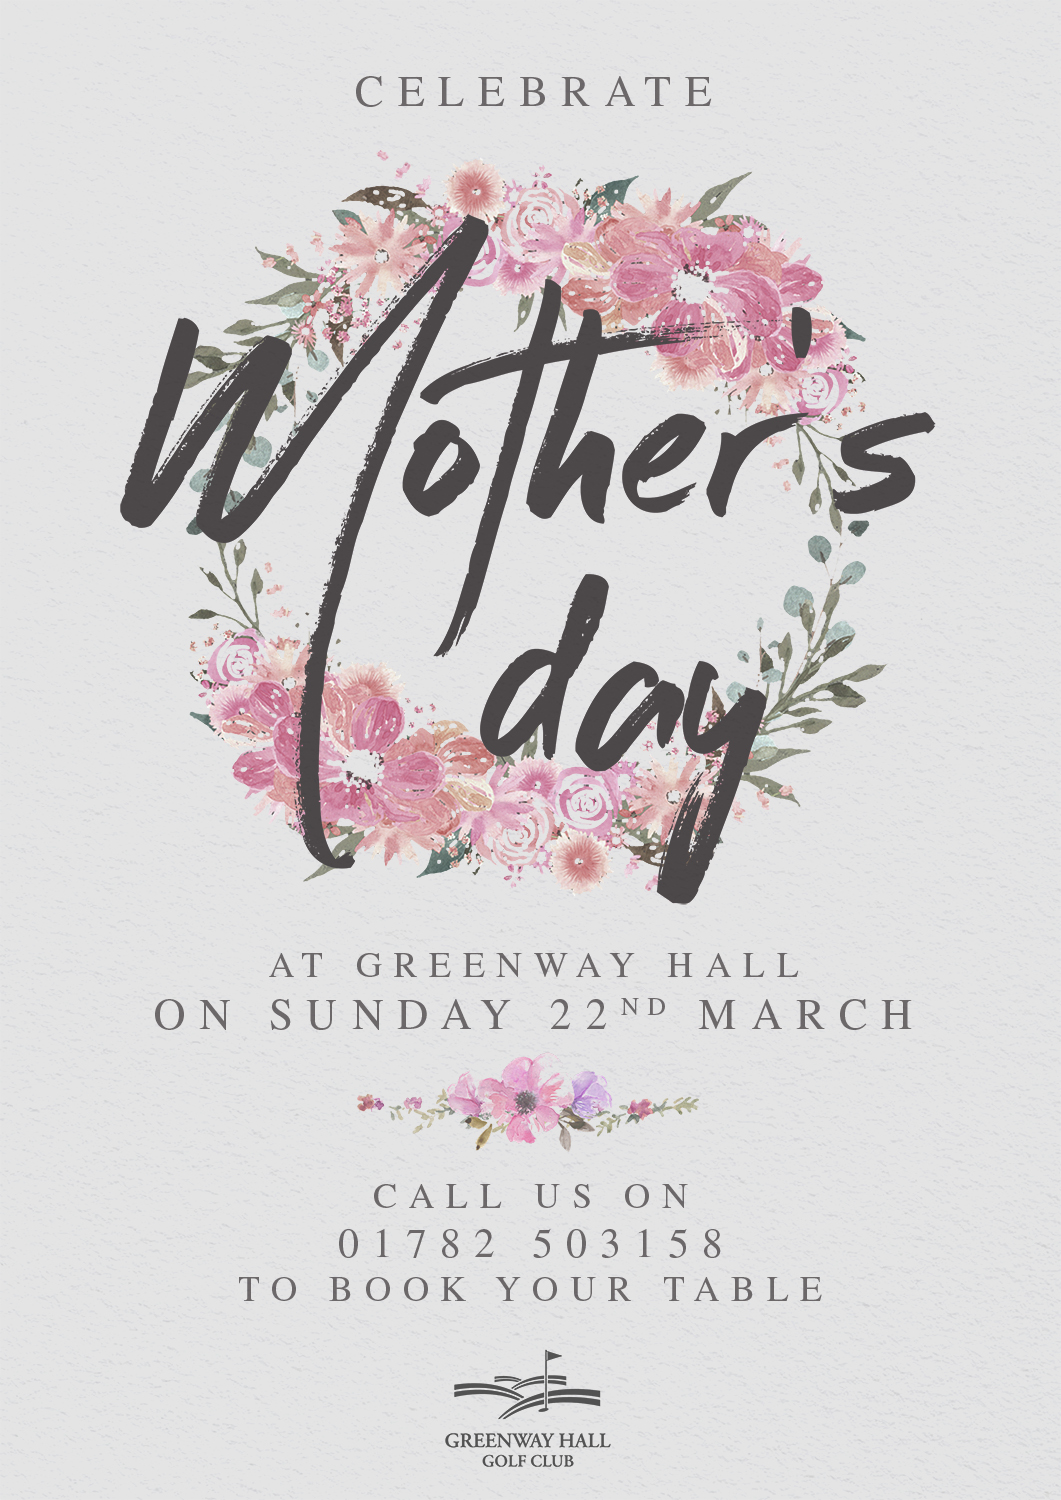 Come and join us for a lovely Mother's Day here at Greenway Hall